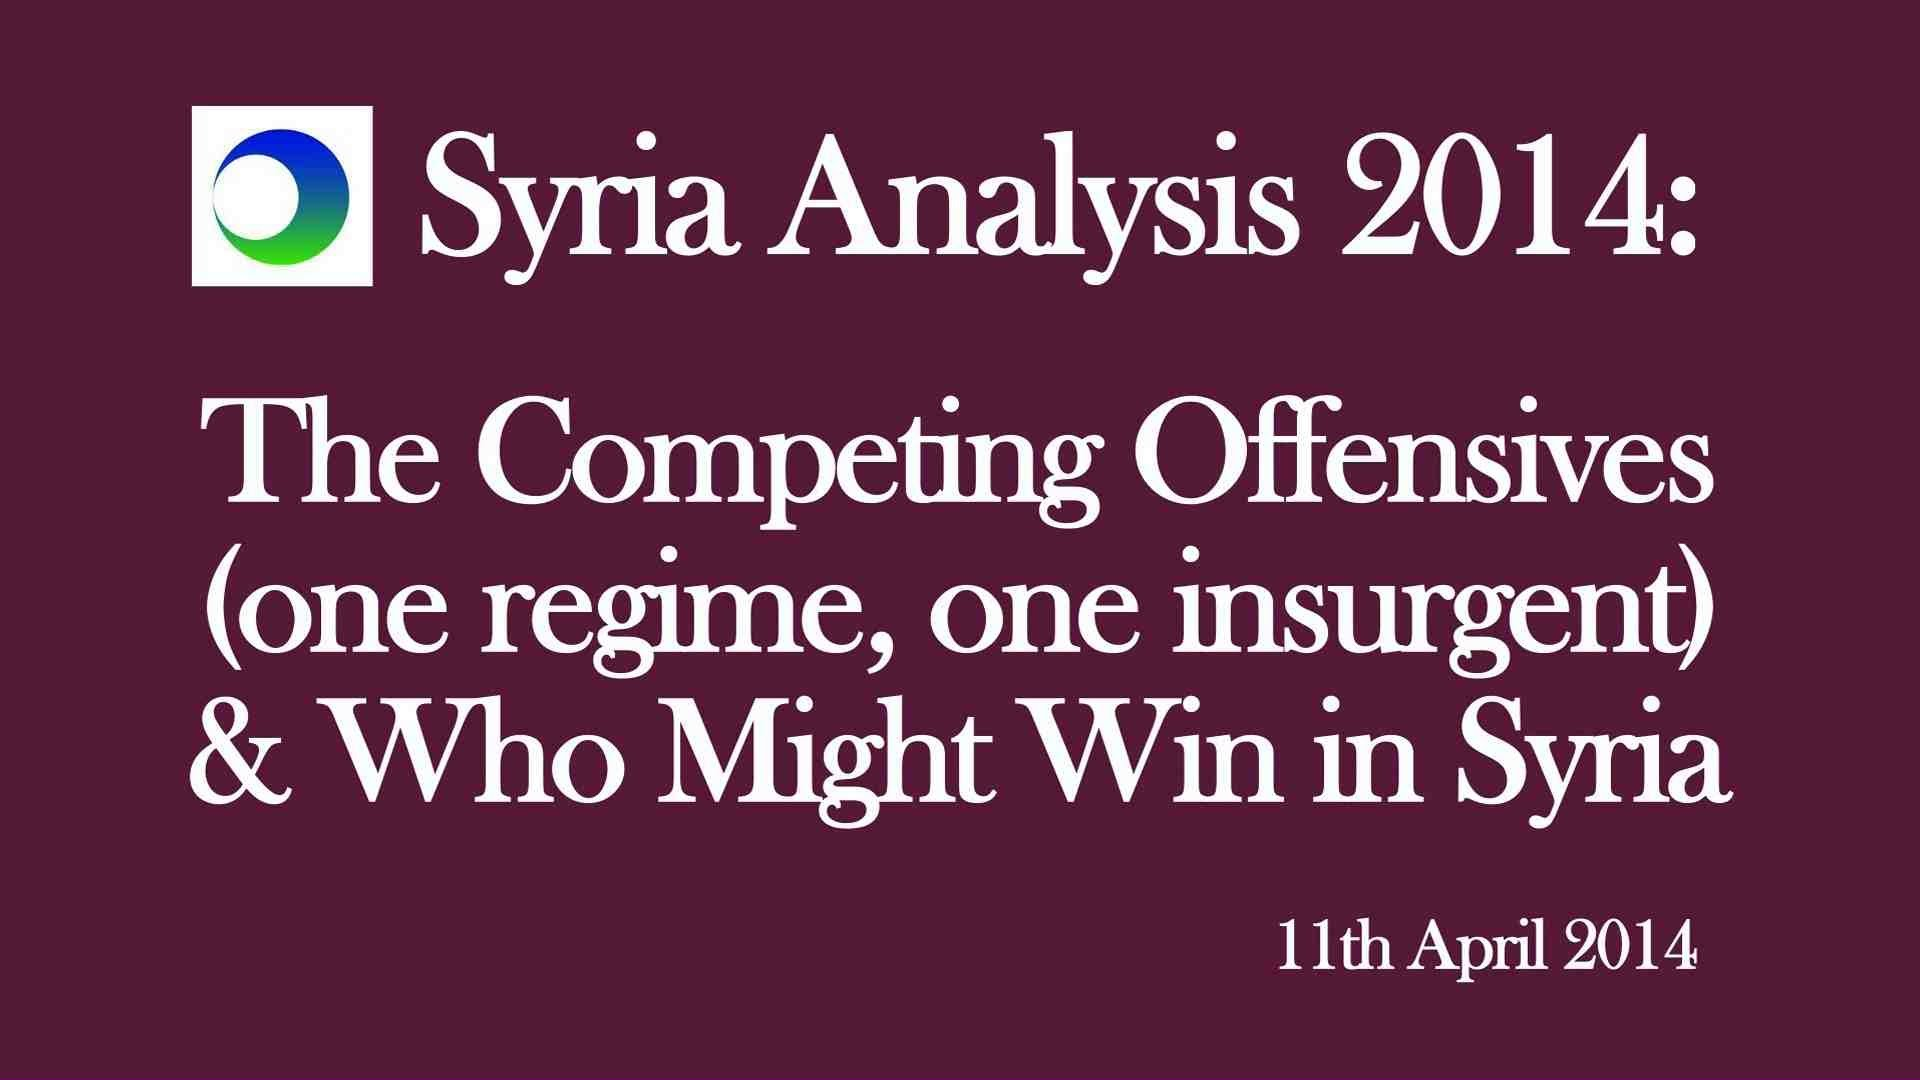 Syria Video Analysis: Who's Winning? — The Story of 2 Competing Offensives